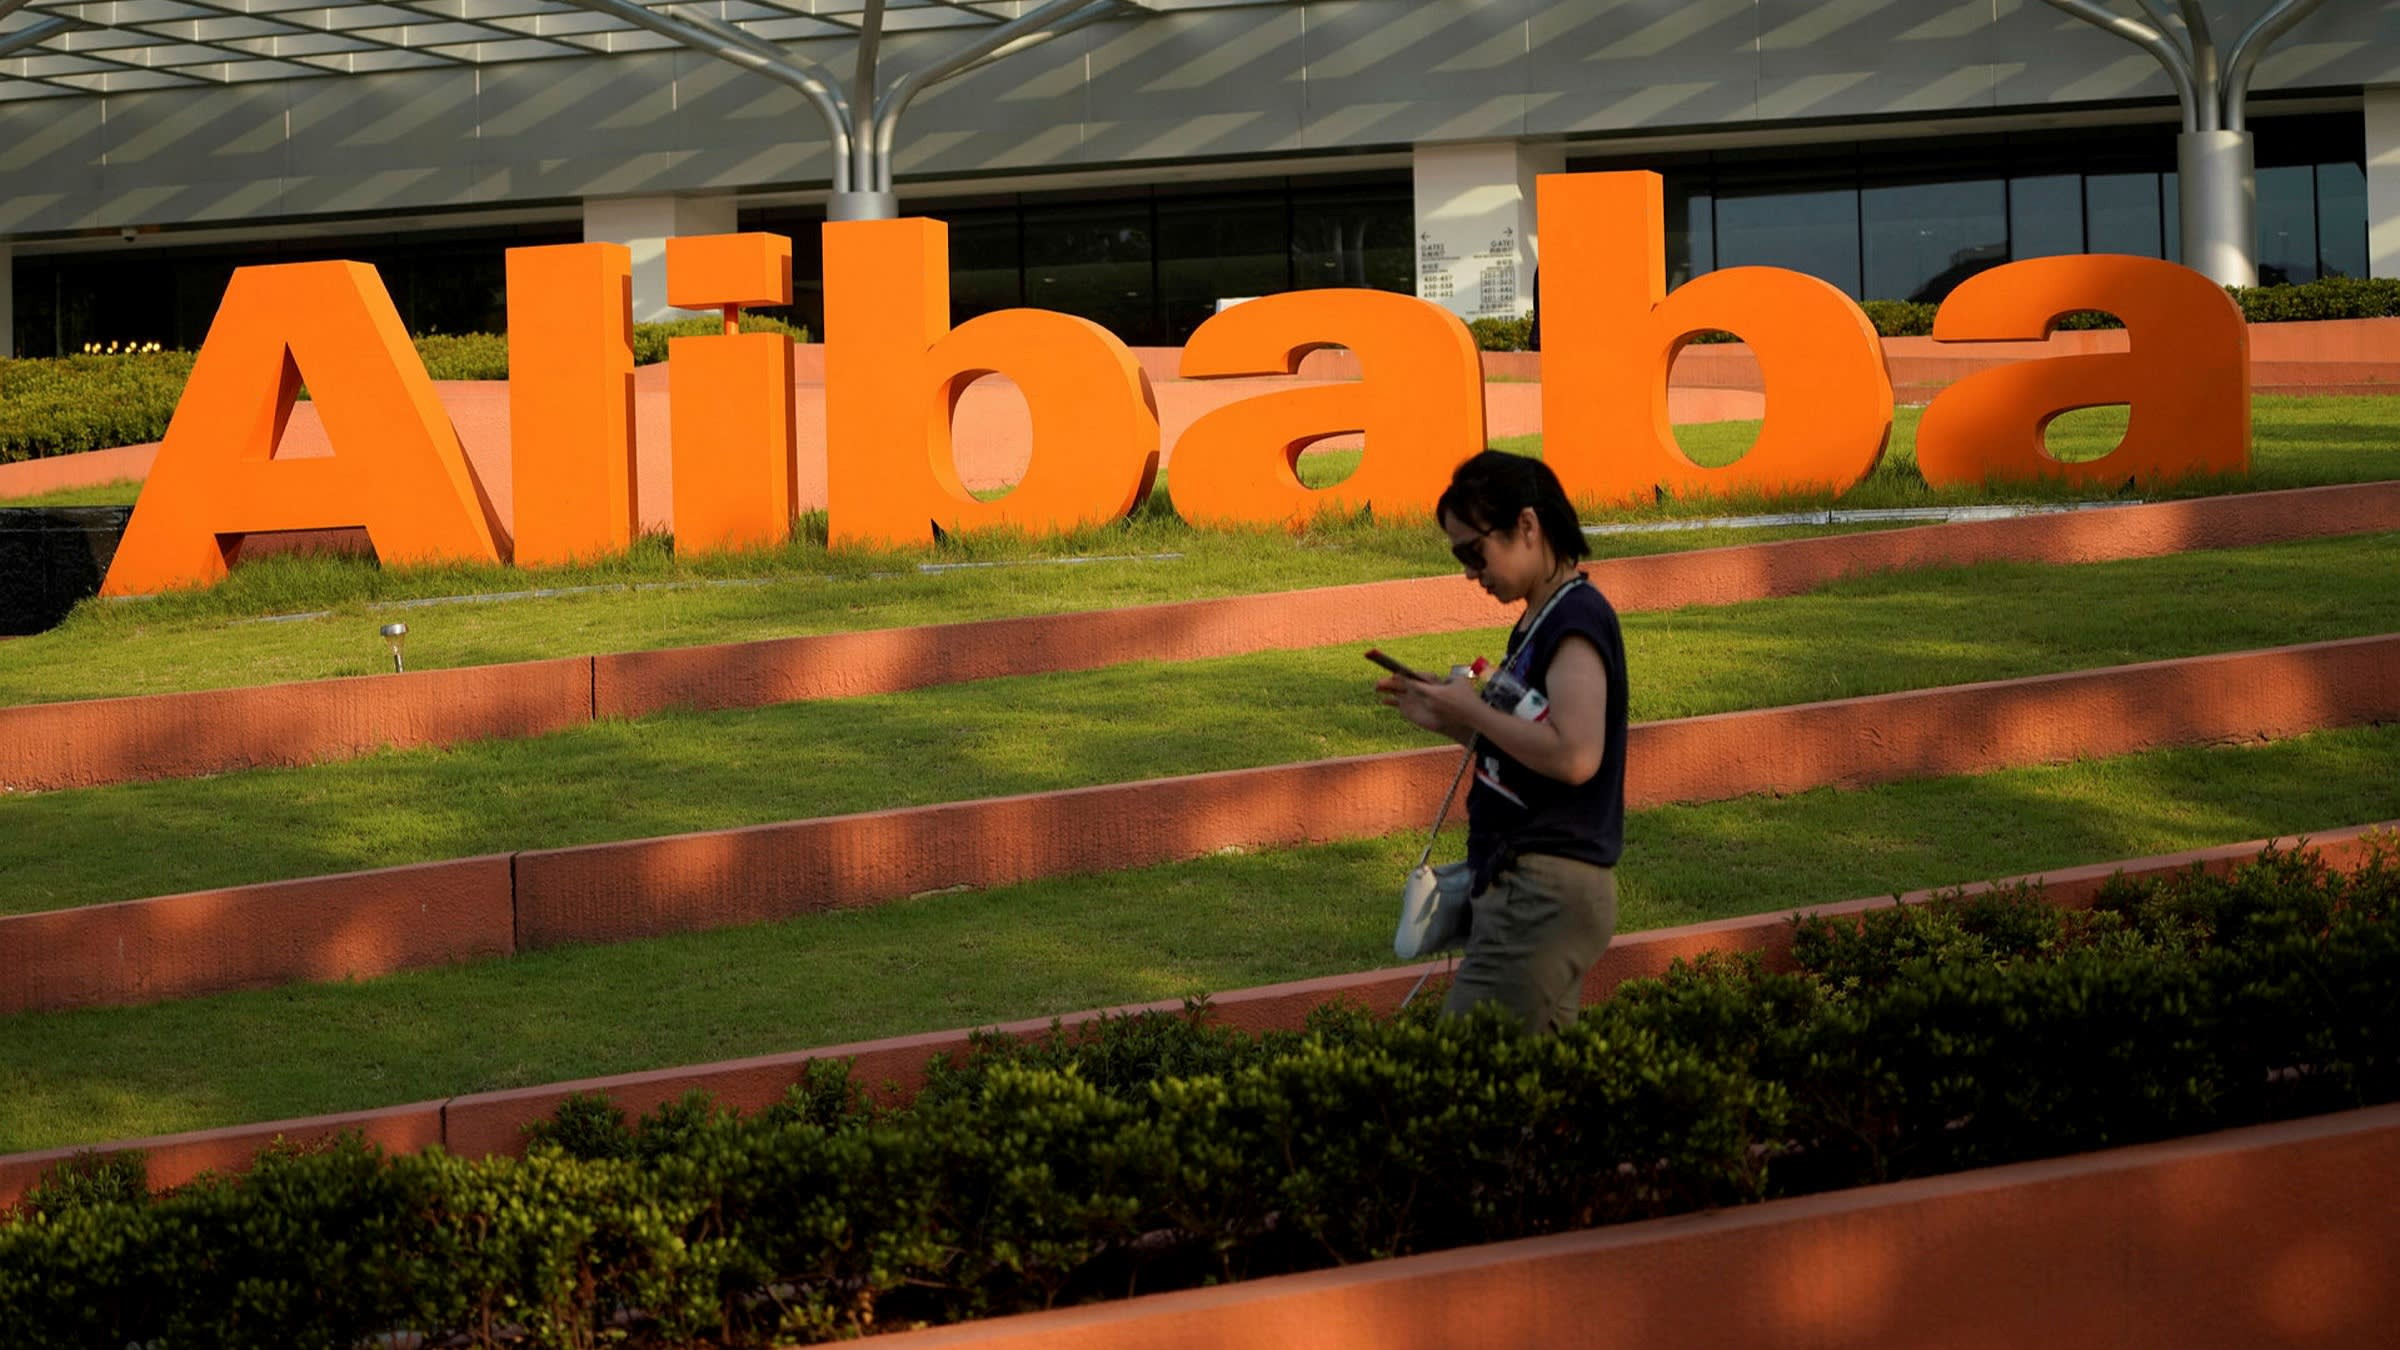 Alibaba's financial report exceeded expectations, with a record 60% growth in the cloud computing business